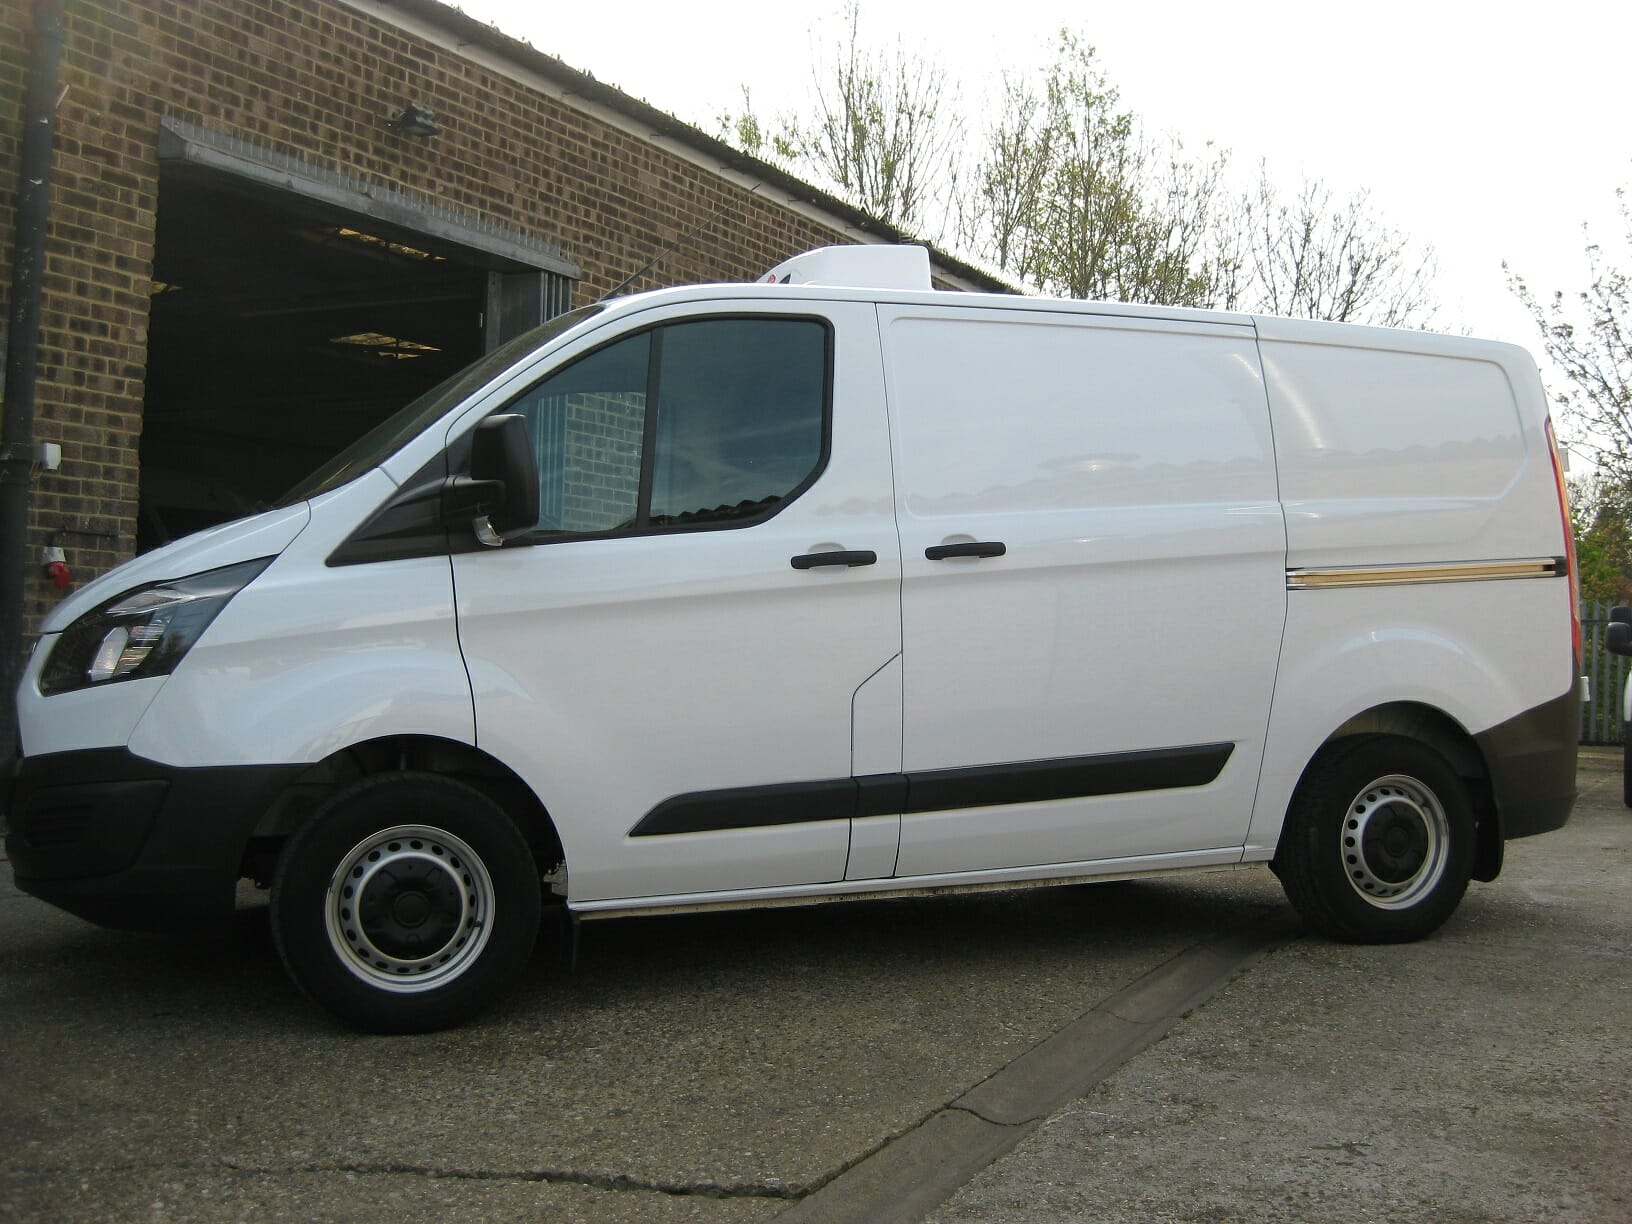 New Ford Transit Custom 280 L1 H1 105ps Euro 6 Freezer Van For Sale